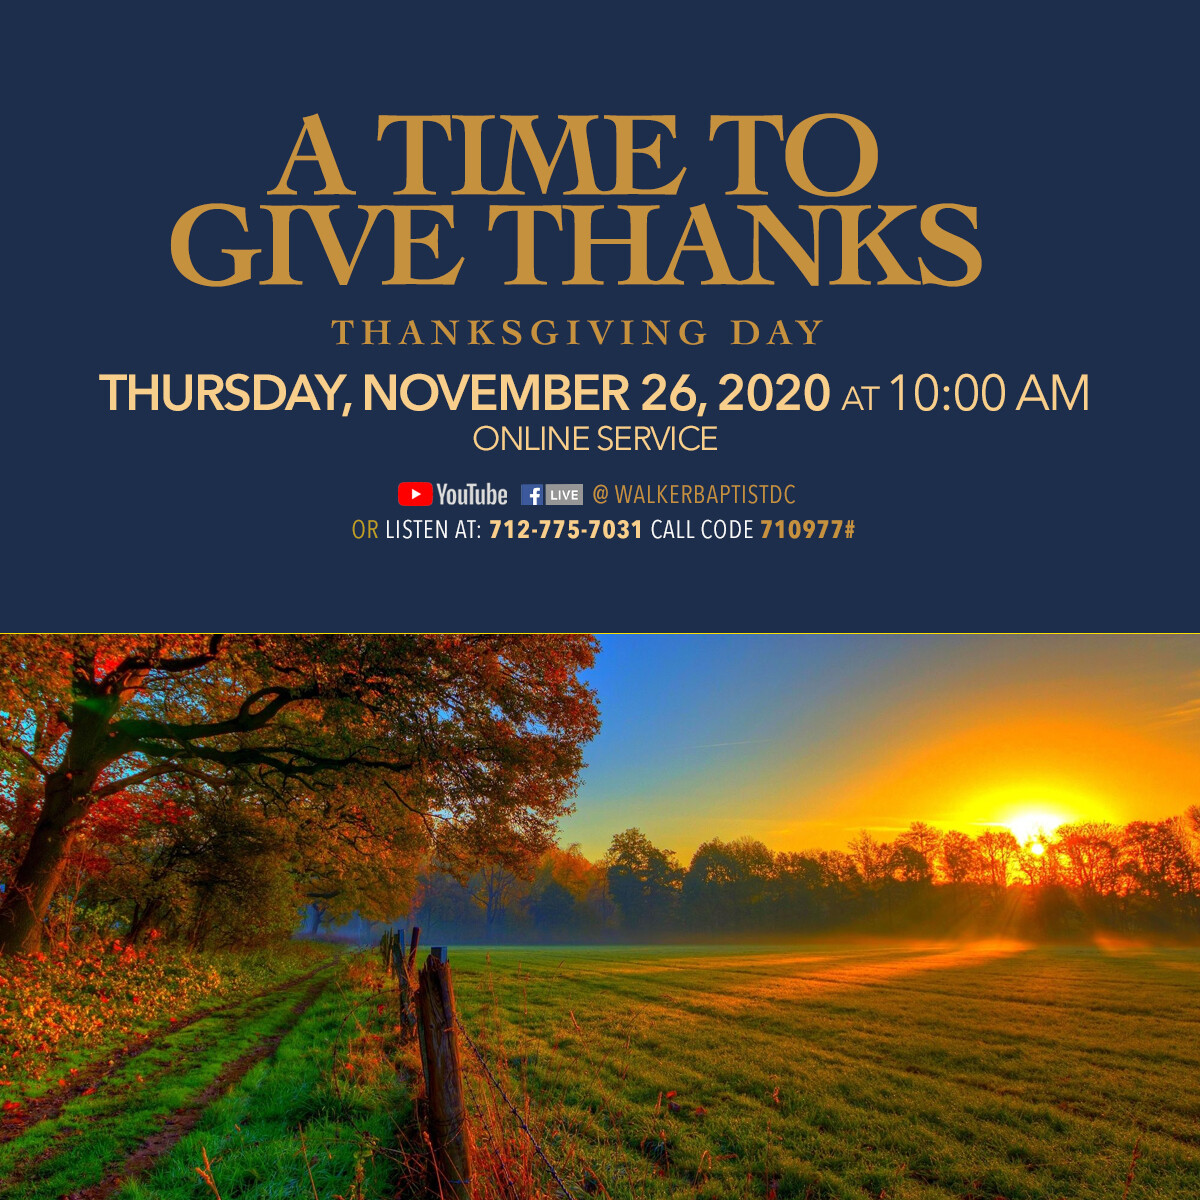 A Time to Give Thanks